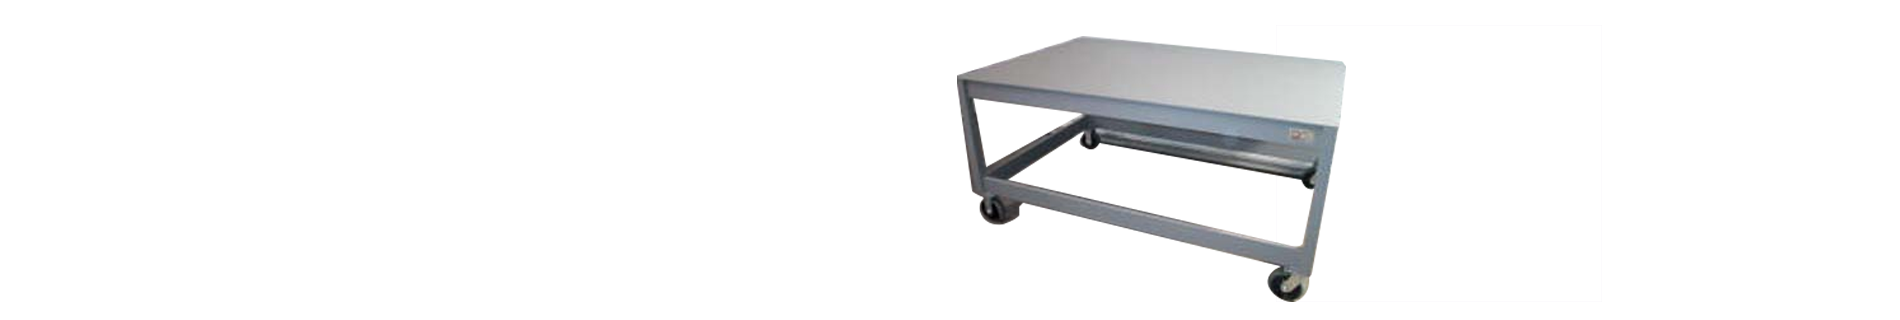 Heavy Duty Workbenches Manufacturers Companies